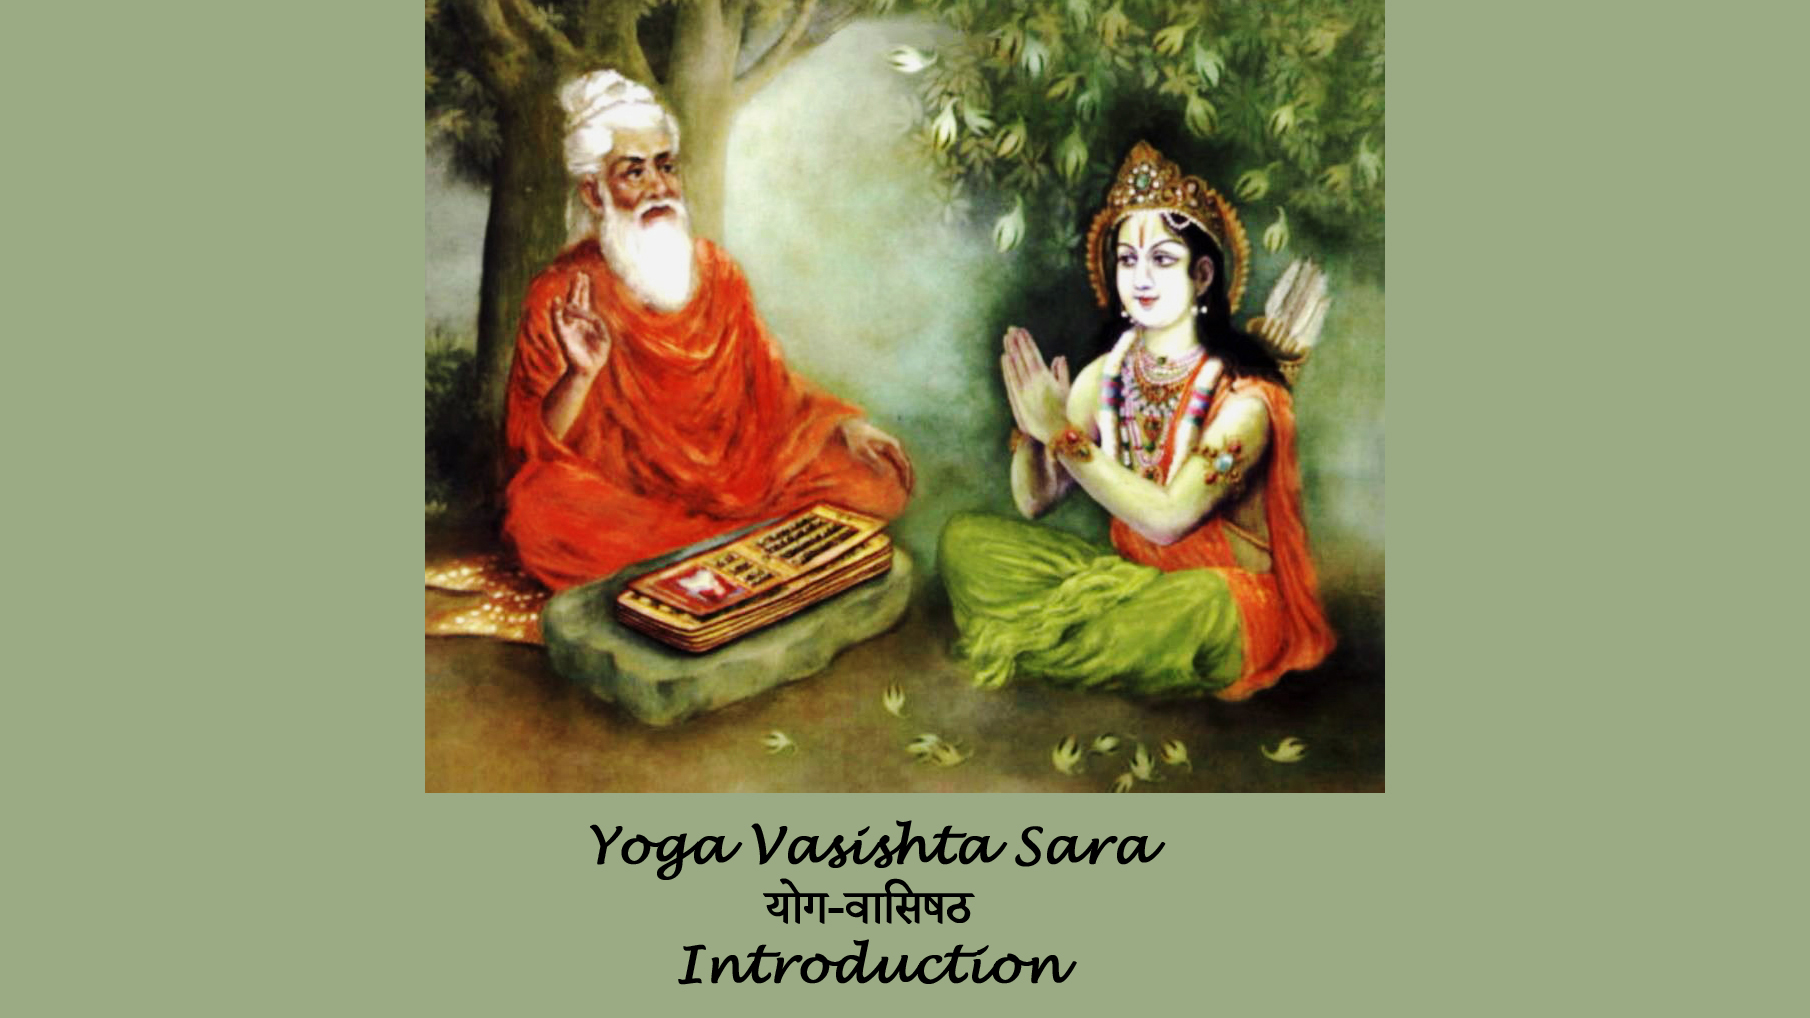 Yoga Vasishta Sara Introduction